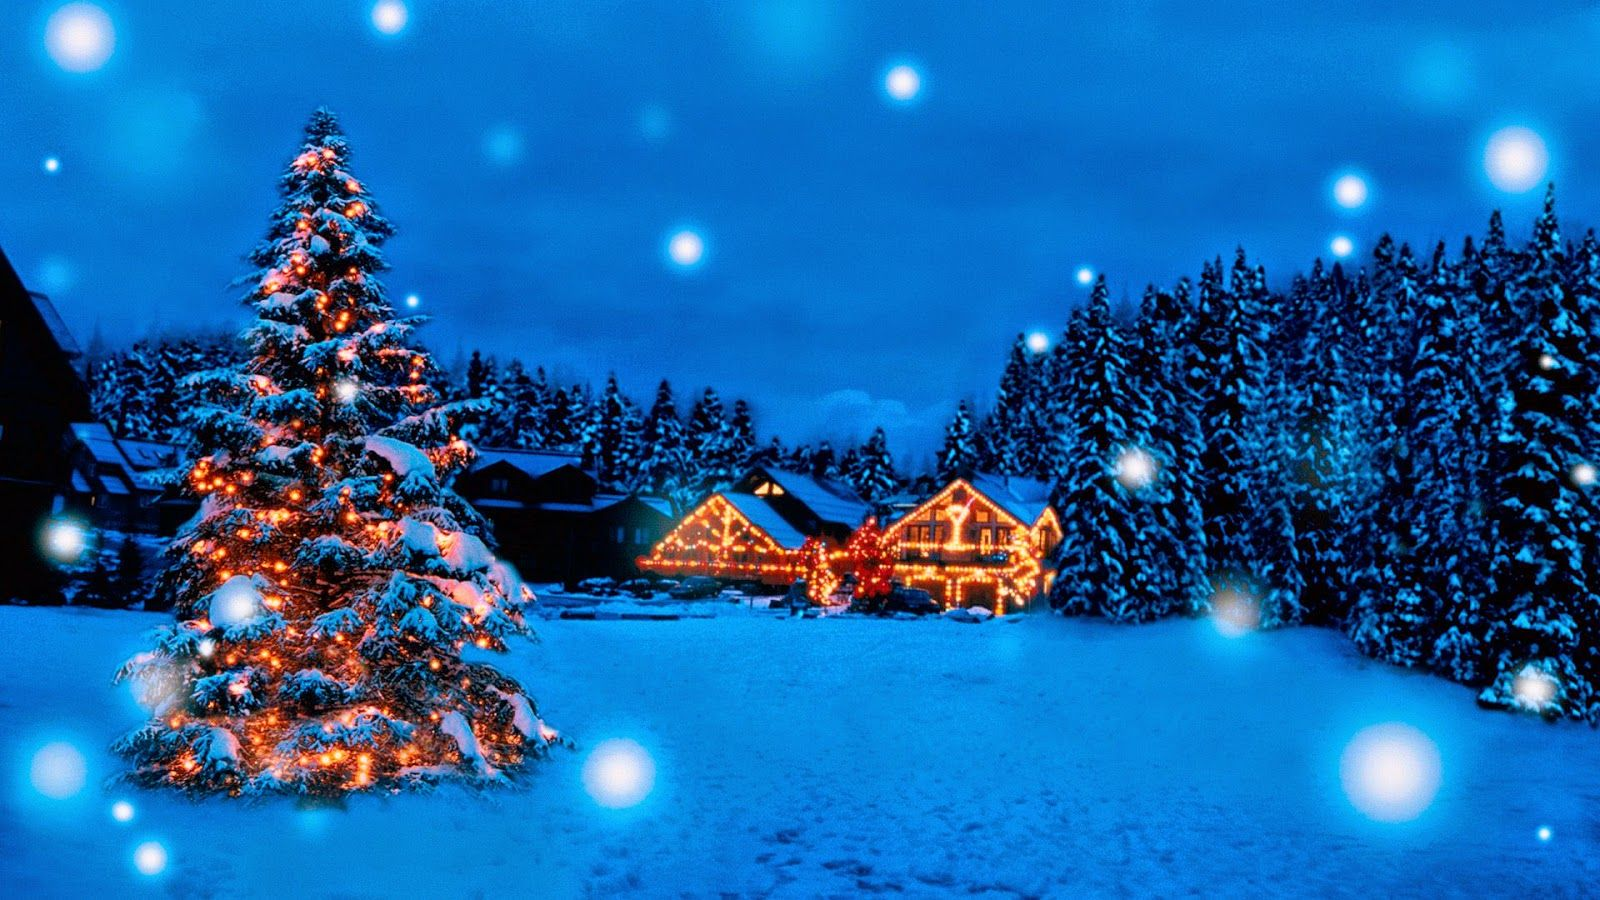 christmaswallpaperhdwidescreen Christmas desktop